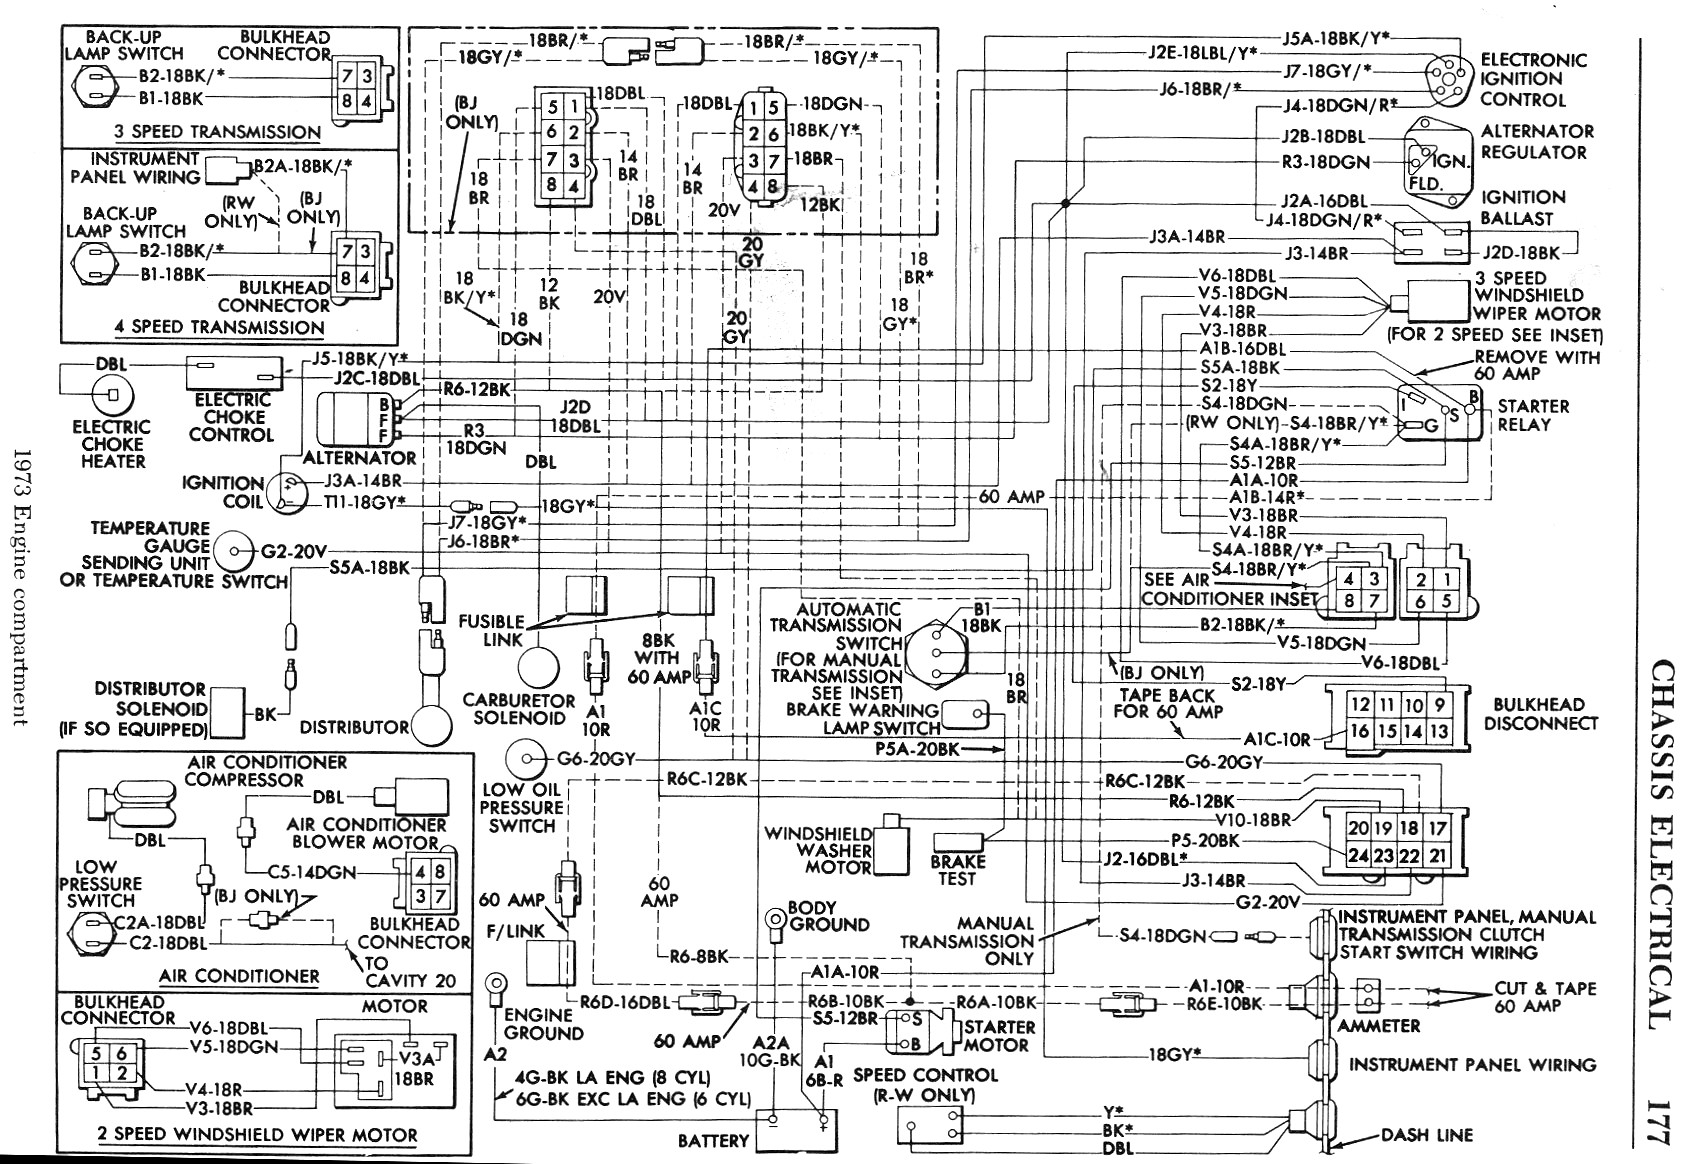 5098823 73B BodyEngineCompartmentWiringDiagram 1967 dodge dart wiring diagram 1963 dodge dart wiring diagram Ford Fuse Box Diagram at n-0.co